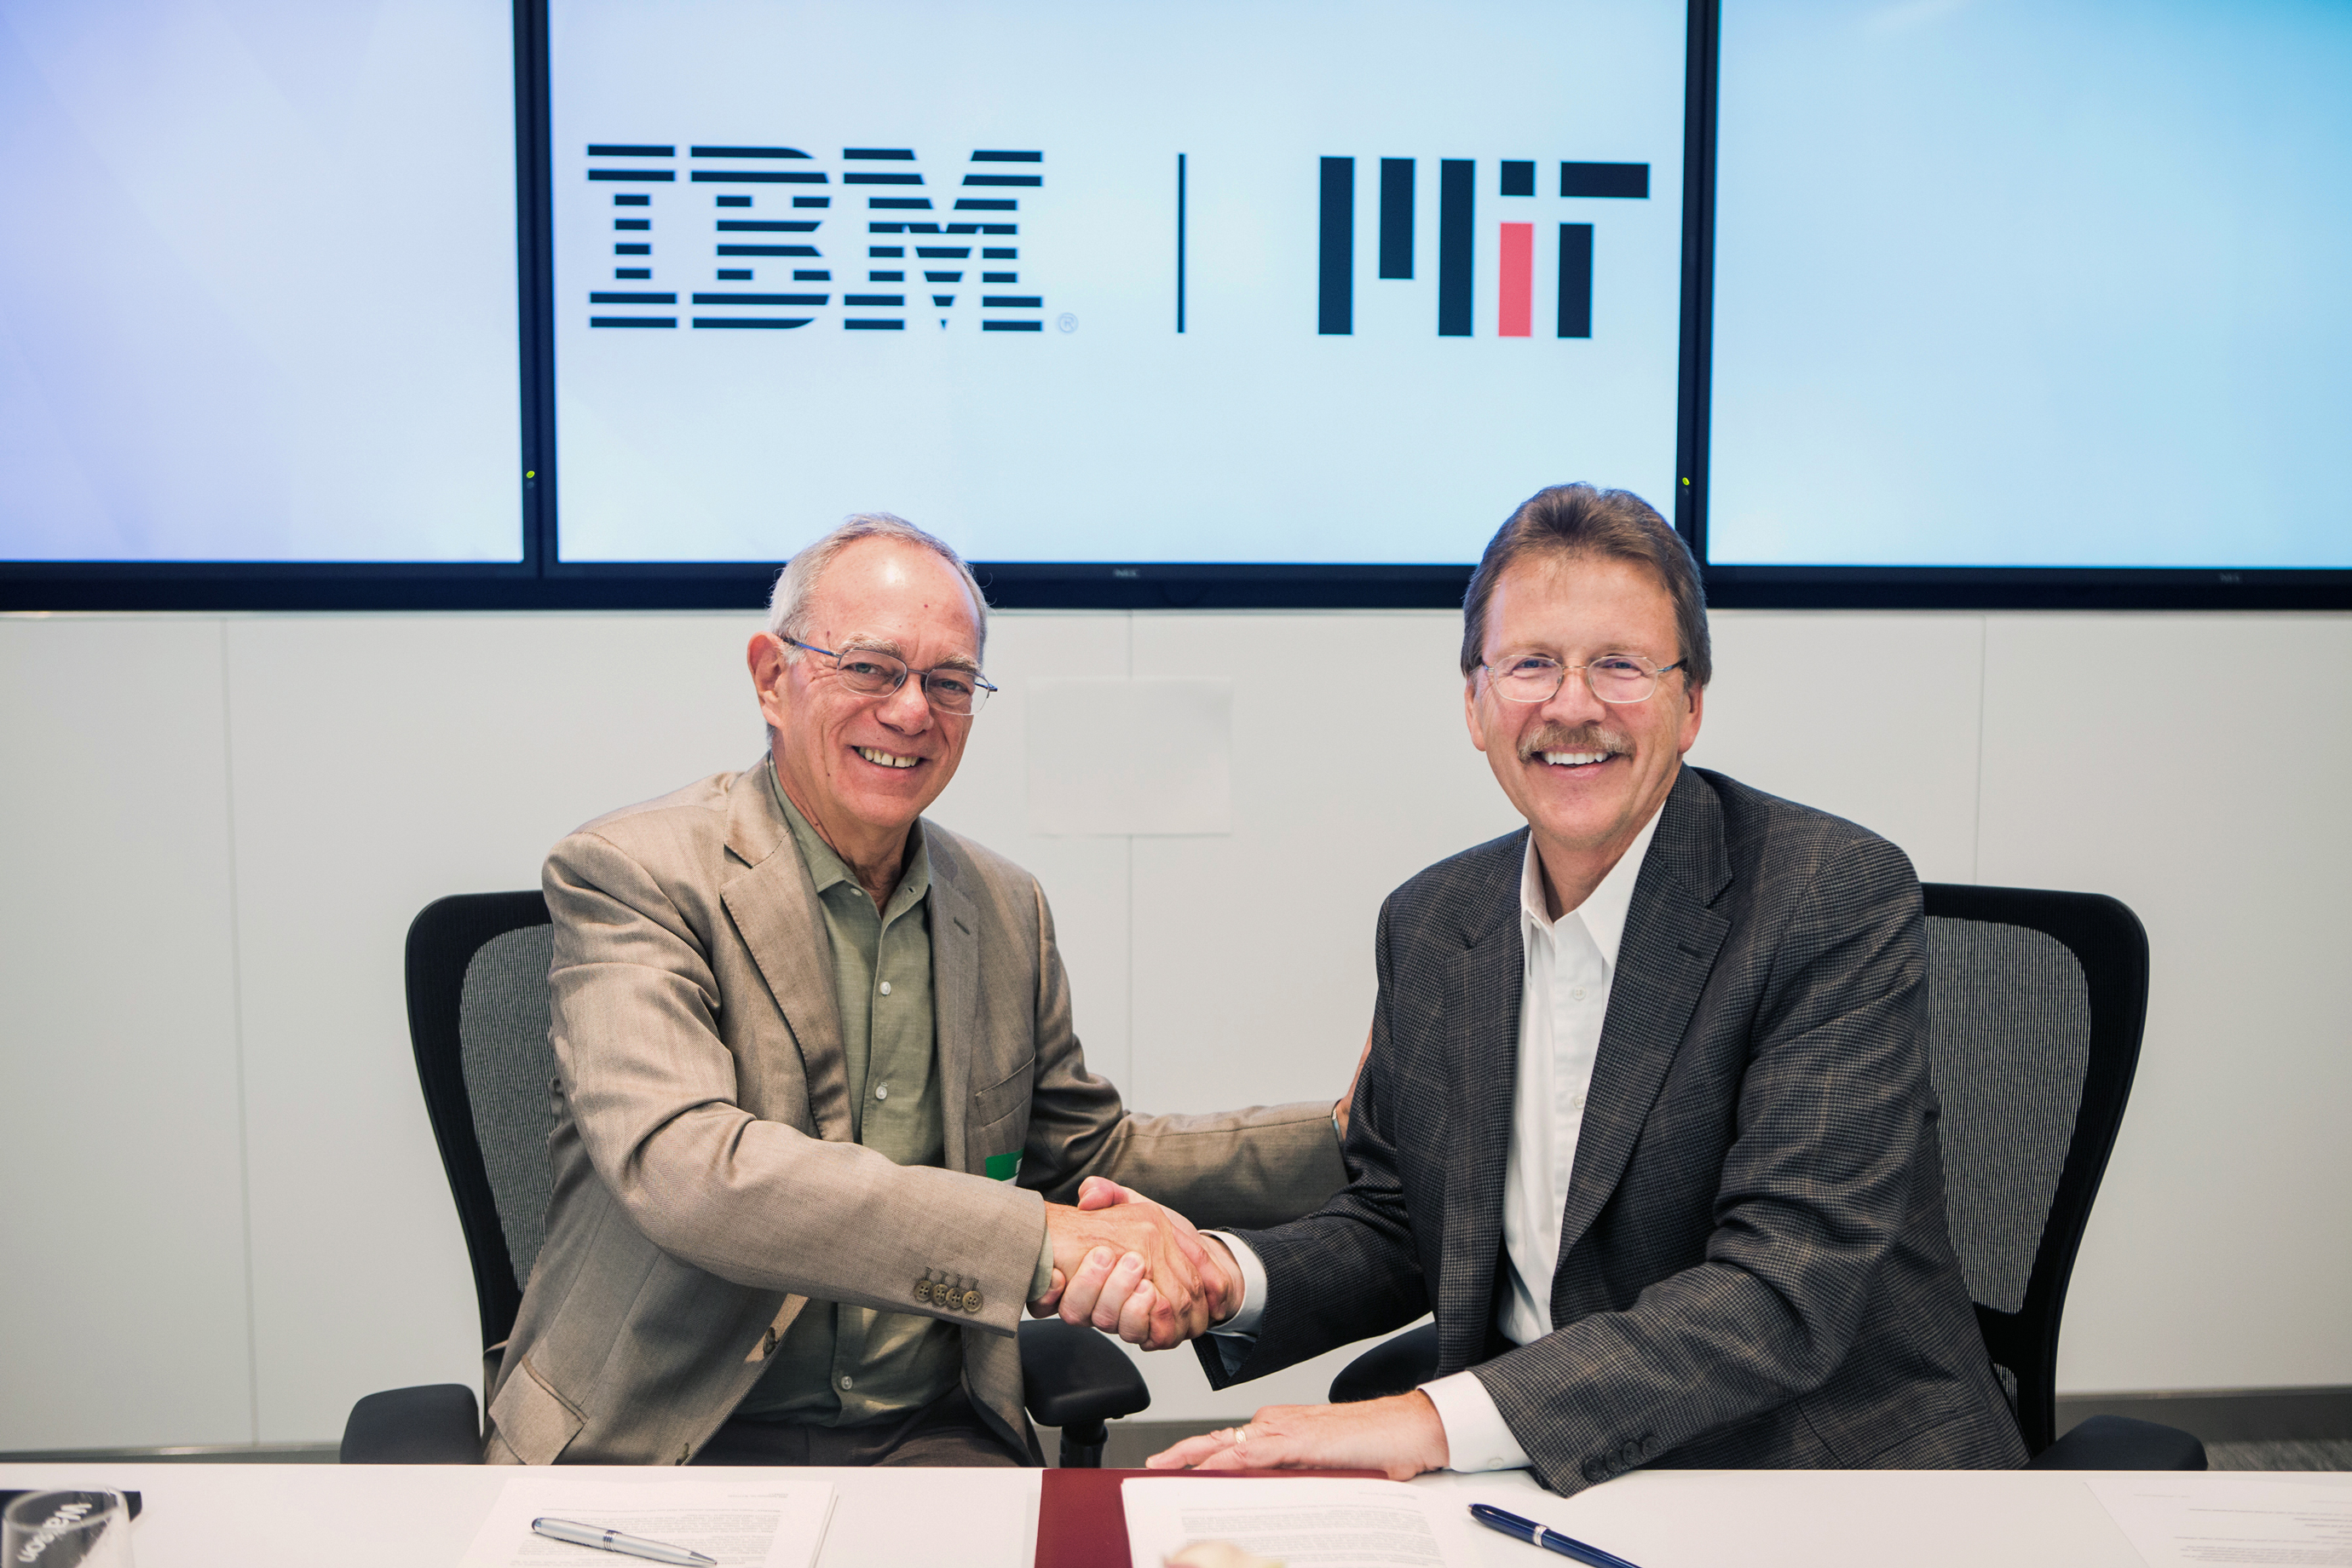 IBM and MIT join forces on AI with new lab